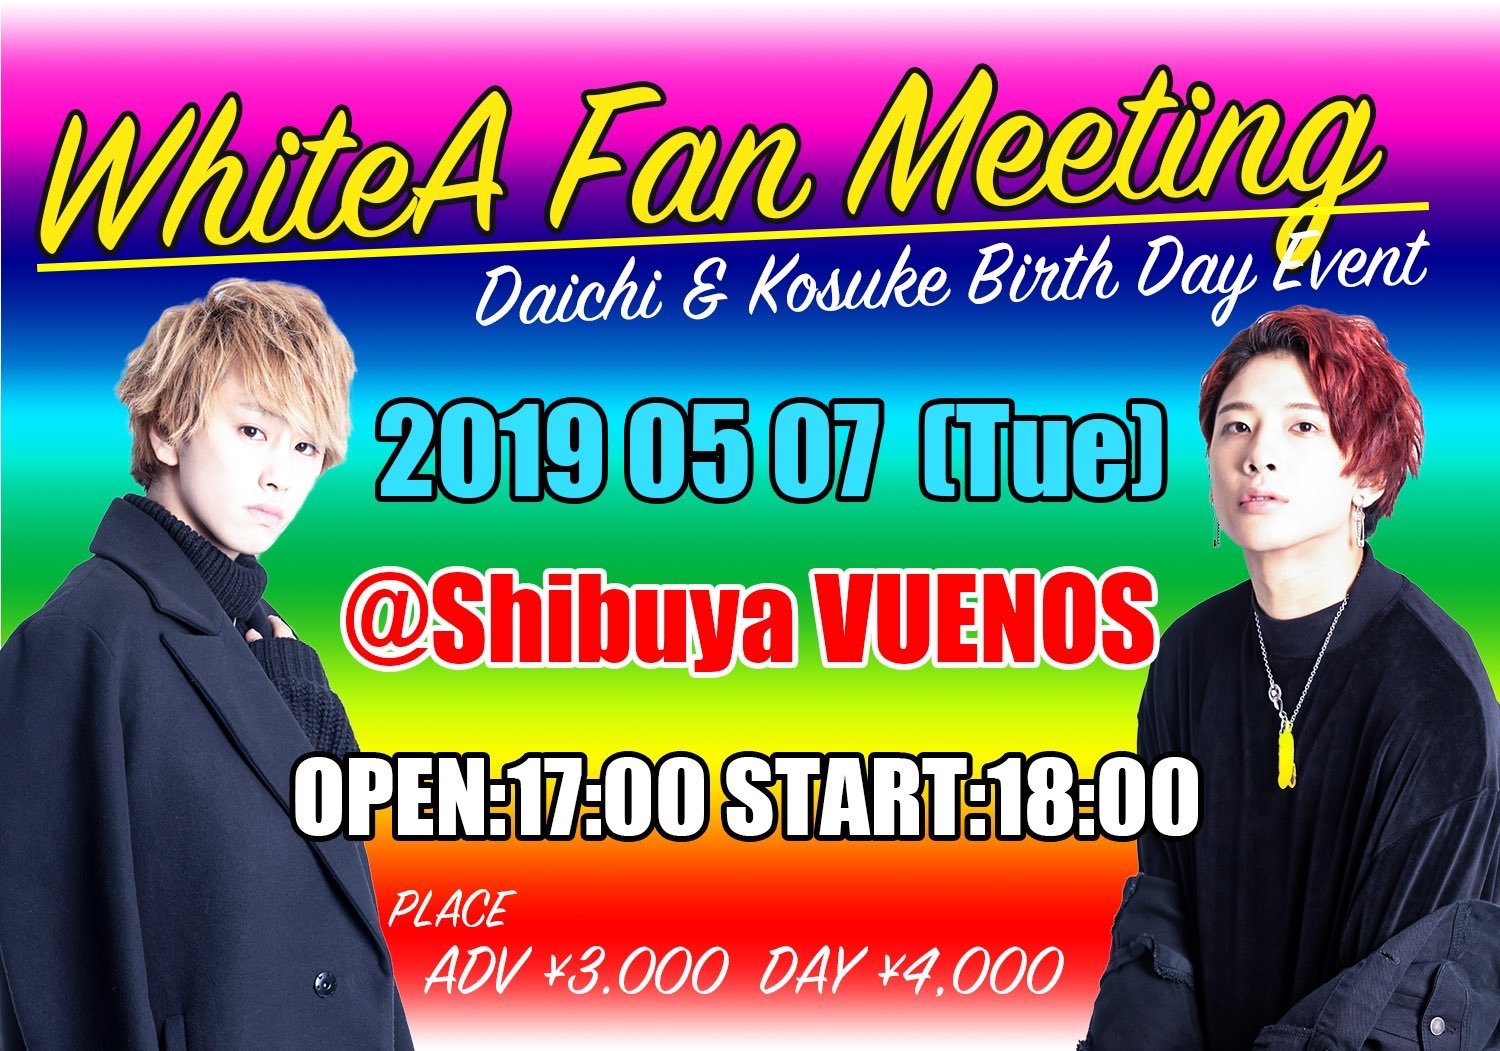 WhiteA  Fan meeting  〜Daichi&Kosuke Birthday event〜